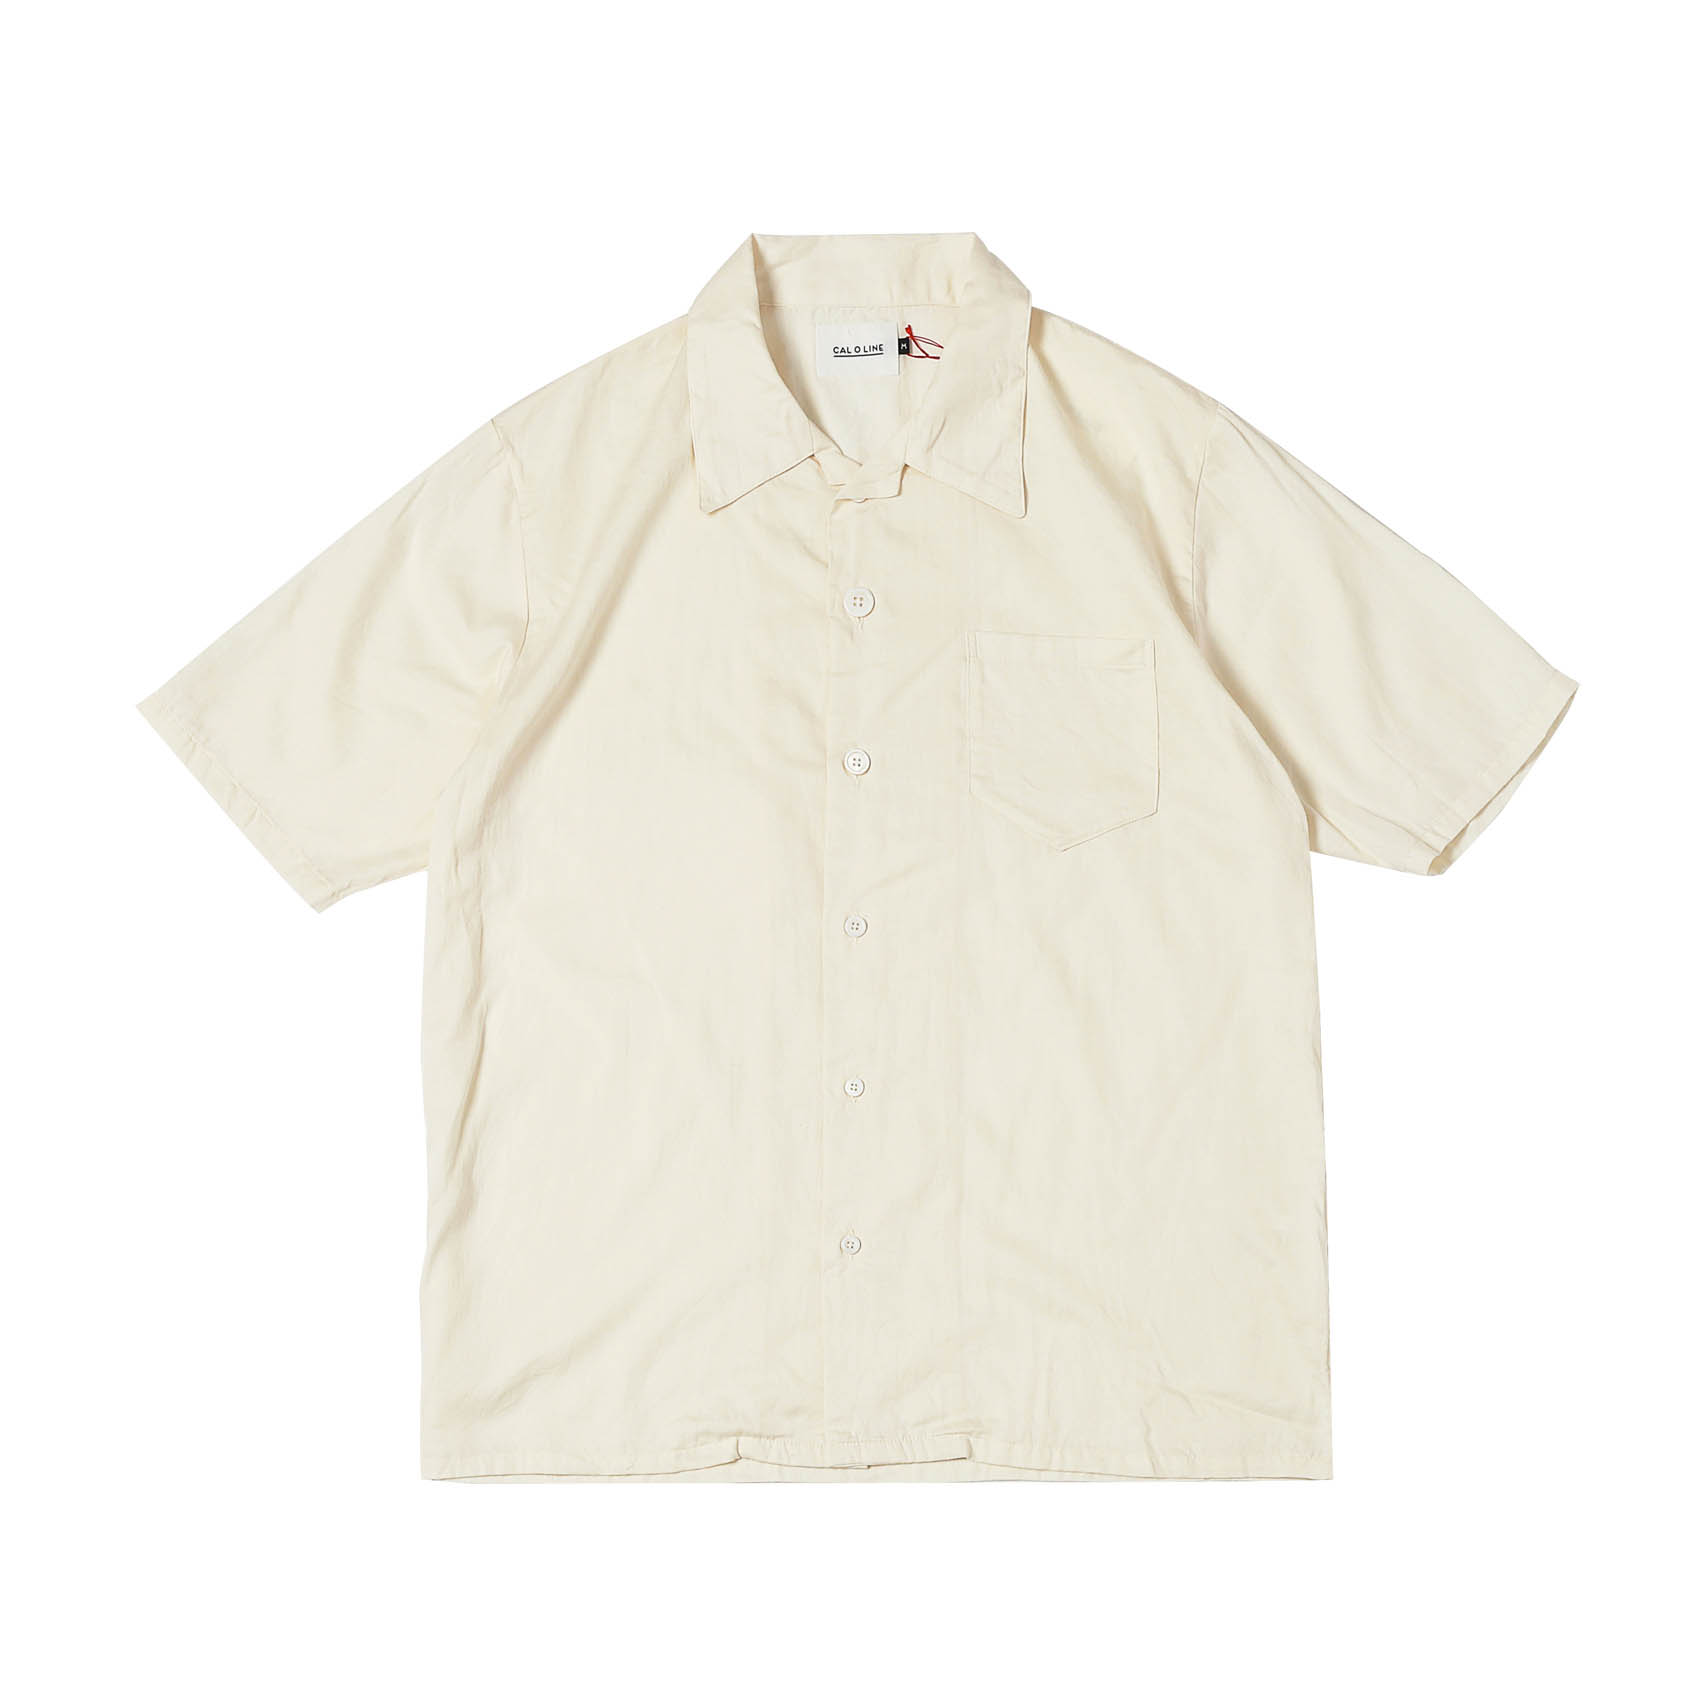 OPEN COLLAR S/S SHIRTS - IVORY